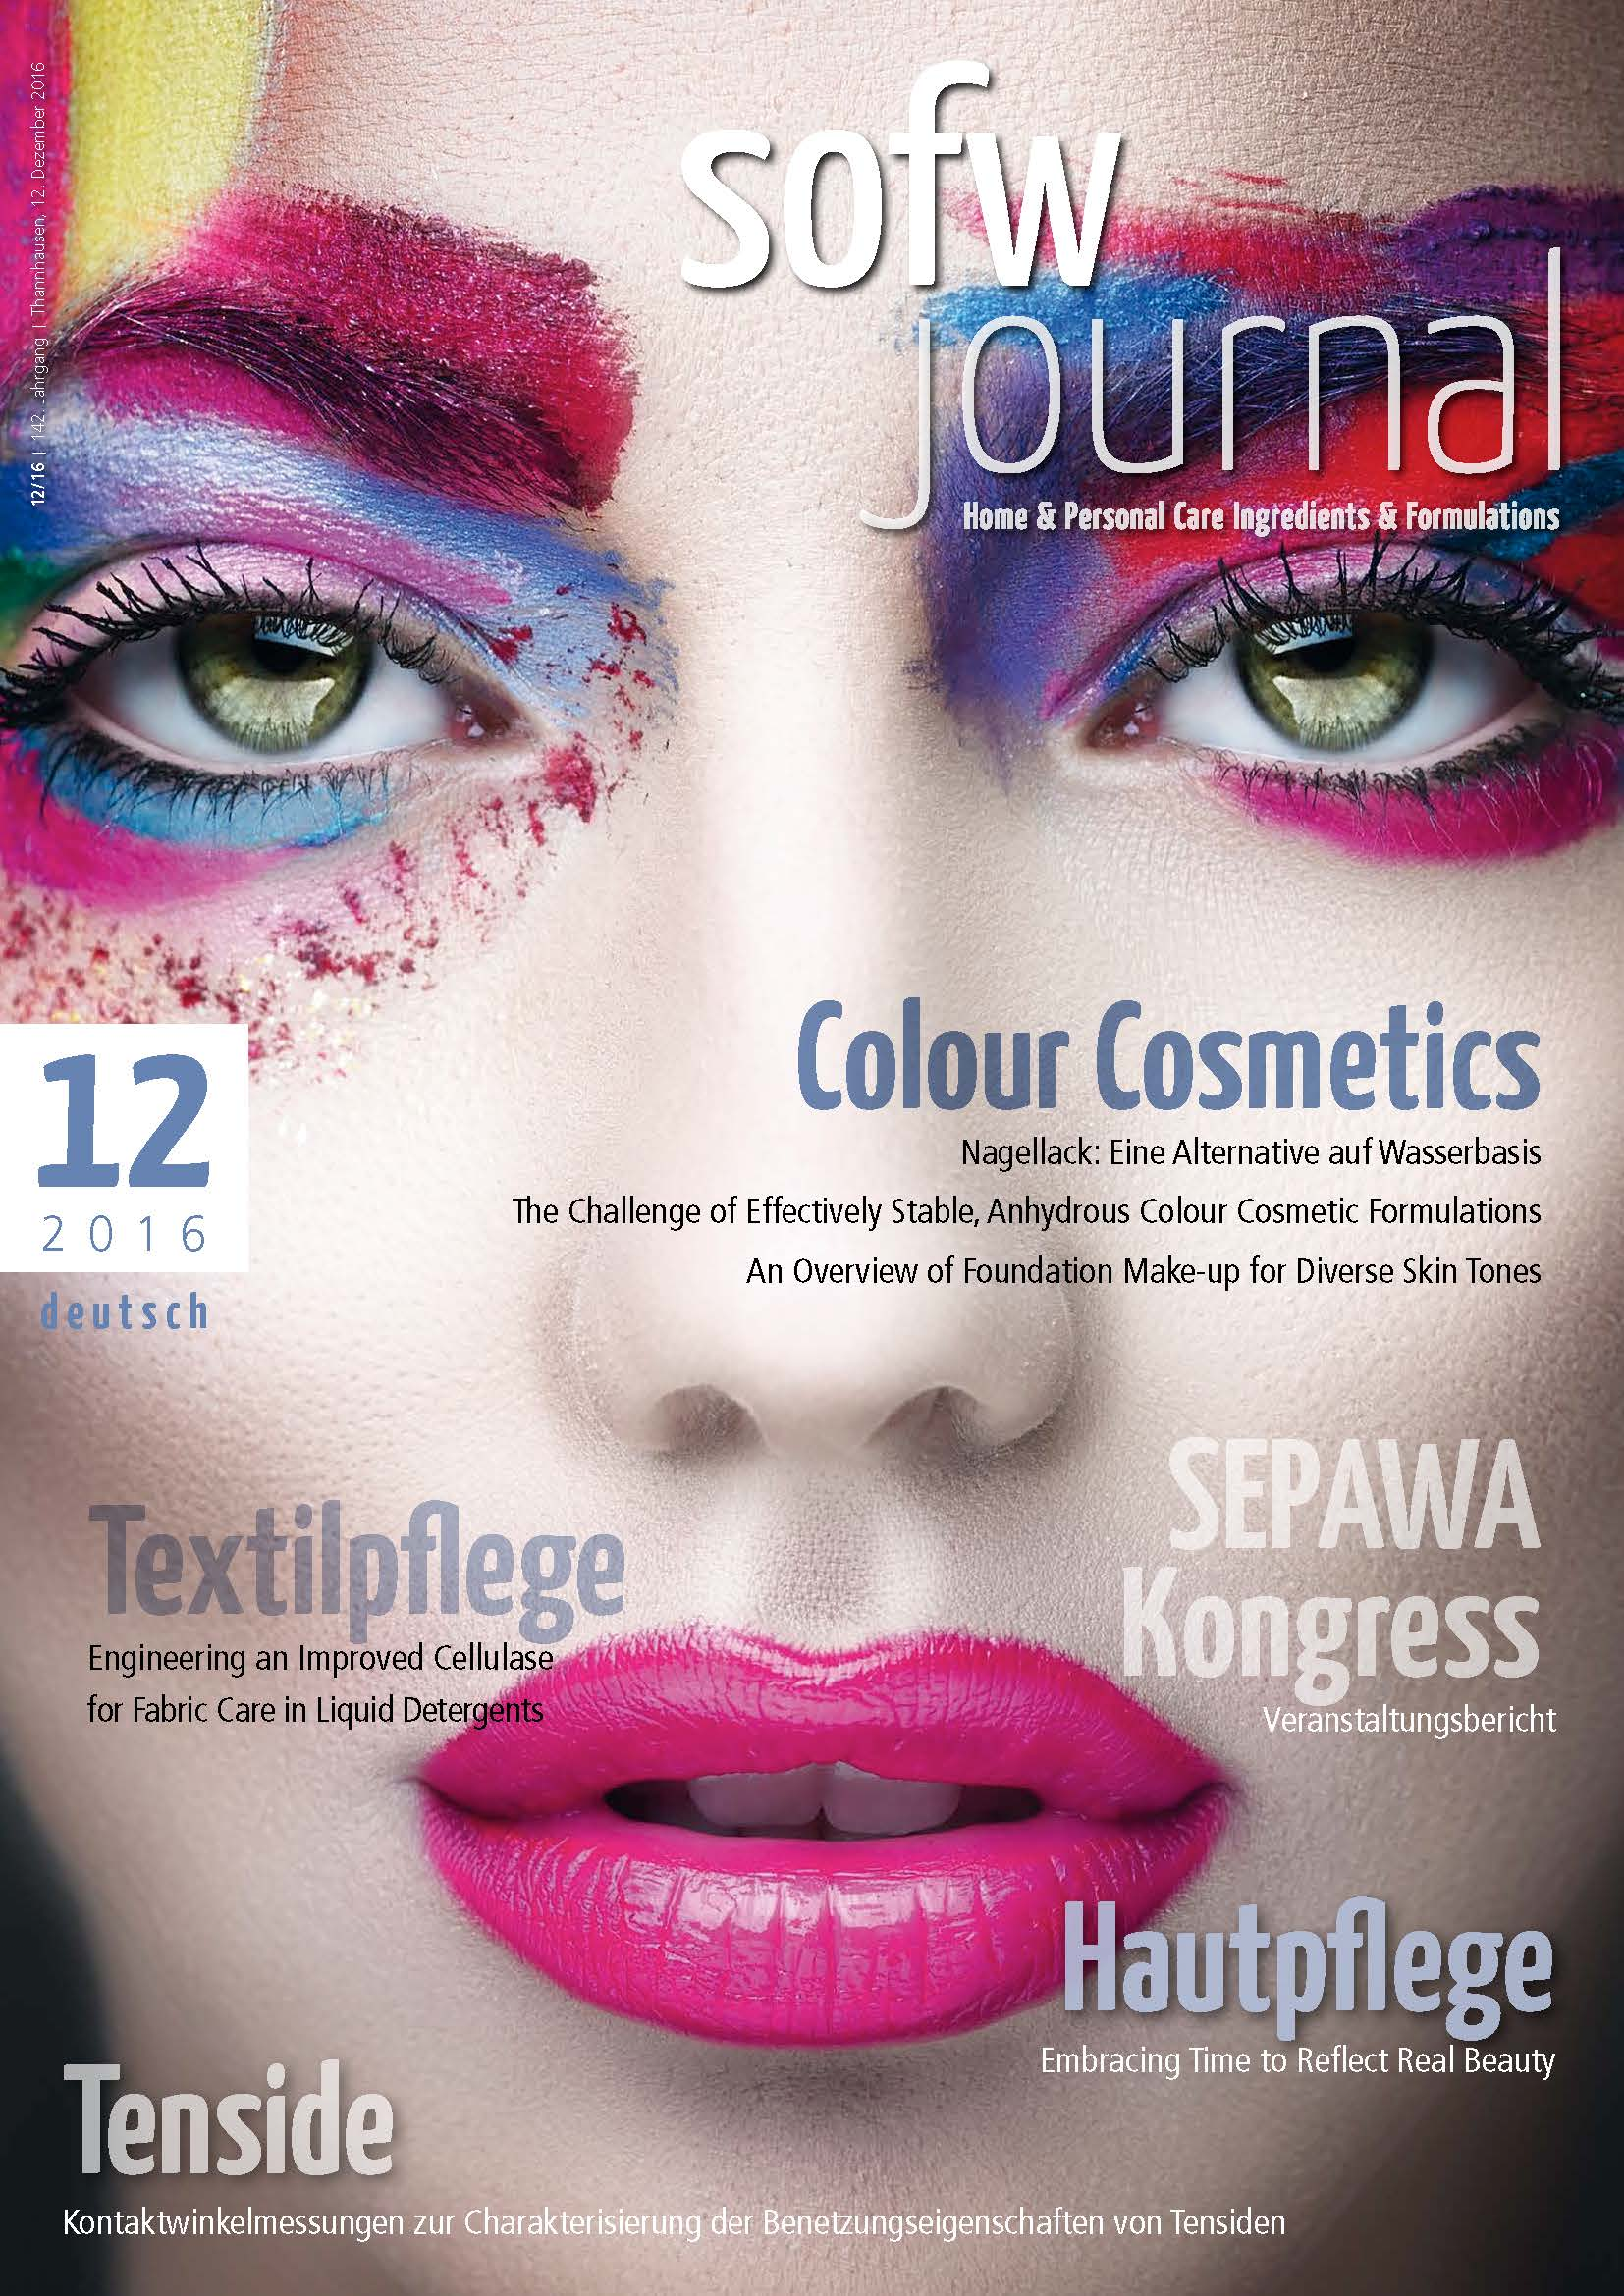 sofwjournal_de_2016_12_cover